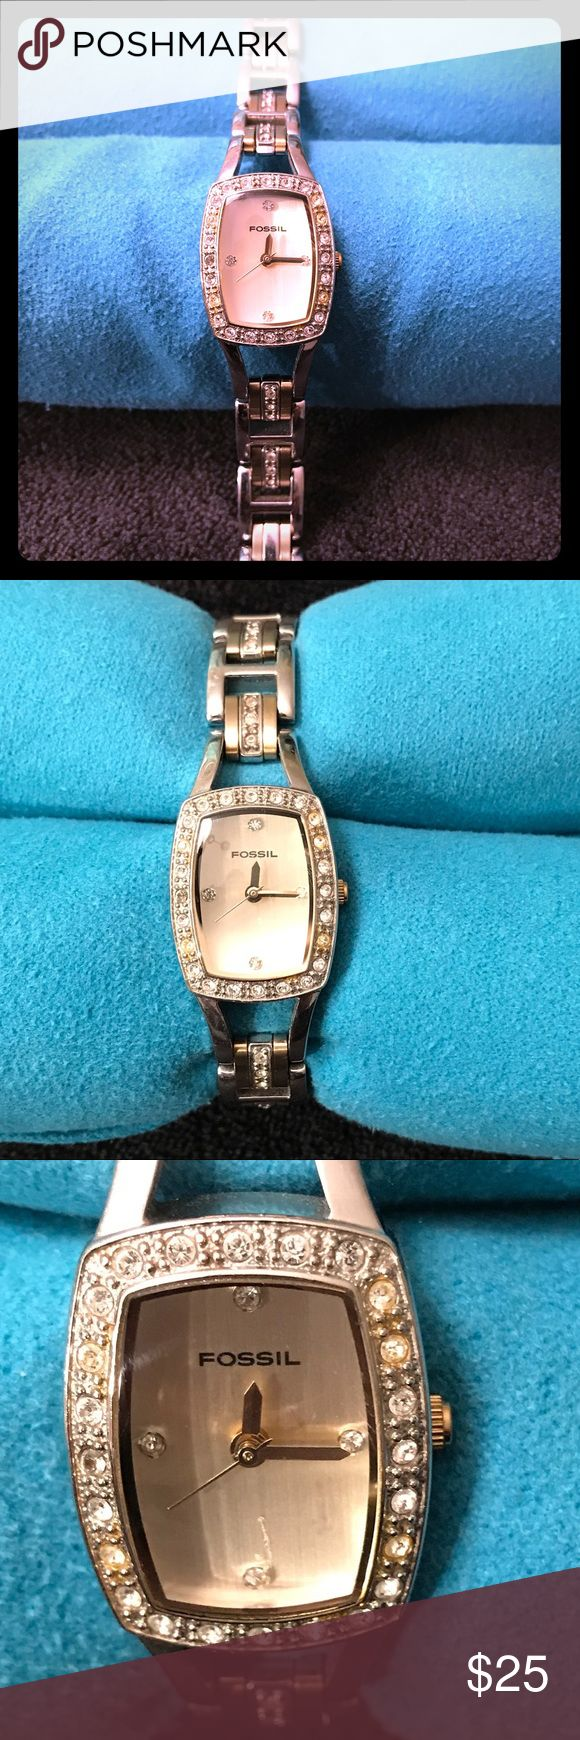 ⚡️Make me an offer⚡️ Fossil ladies watch two-tone Fossil Women's F2 ES1170 Two Tone, Crystal Laced, Steel Band Wrist Watch w/ Analog Dial   •Needs battery 🔋• Beautiful ladies watch for everyday wear, dress it up or down, you can't go wrong! Small scratch on crystal (pic), band is in good condition and extra link(s) included.   No trades.  ⚡️Make me an offer⚡️ Fossil Accessories Watches